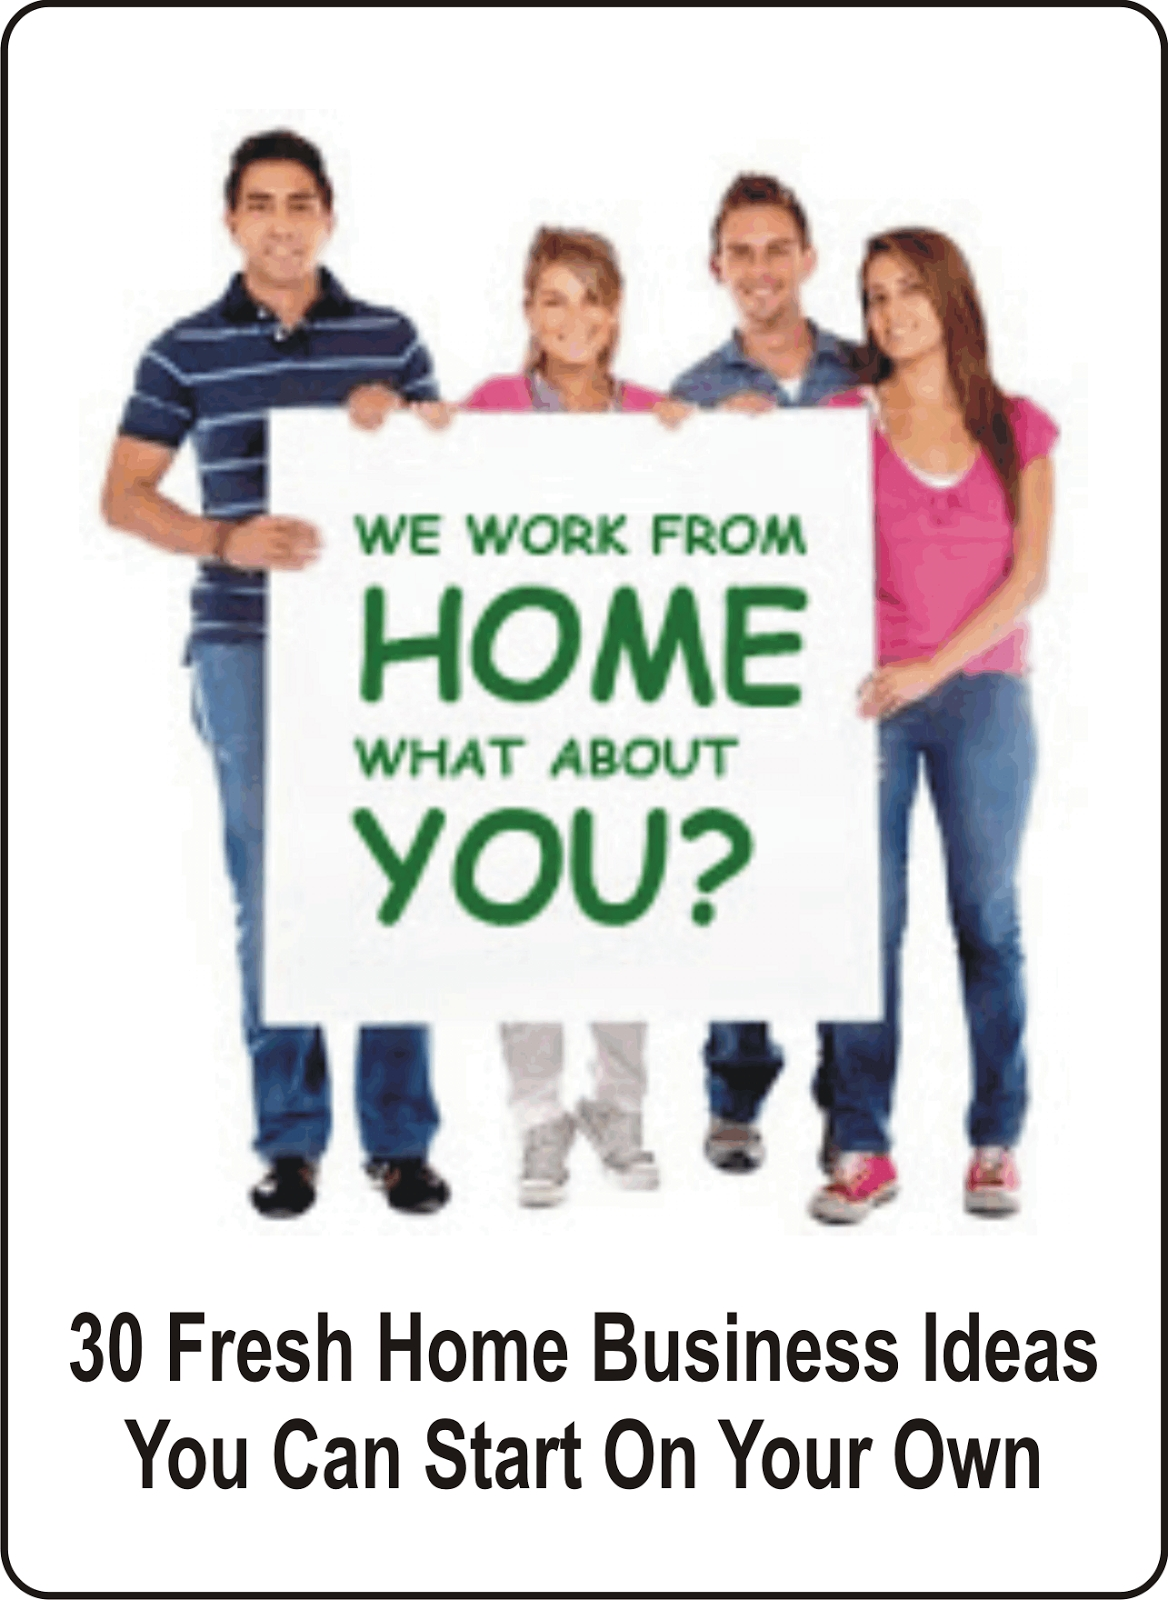 starting a home based business ideas | home design ideas